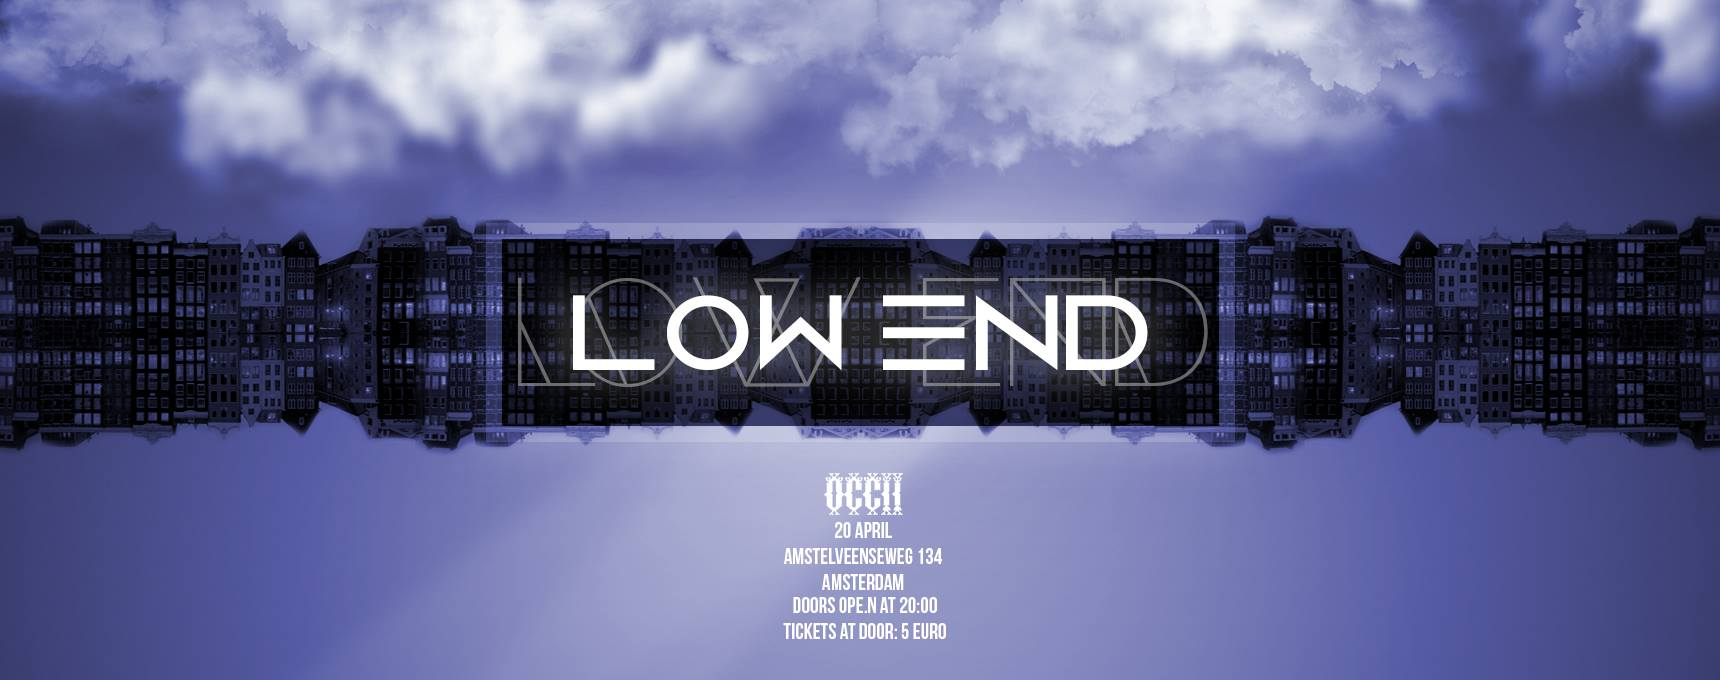 LOW END present: SMMYD + TW97 + Timothy Martin + KLENG + CHIMERA